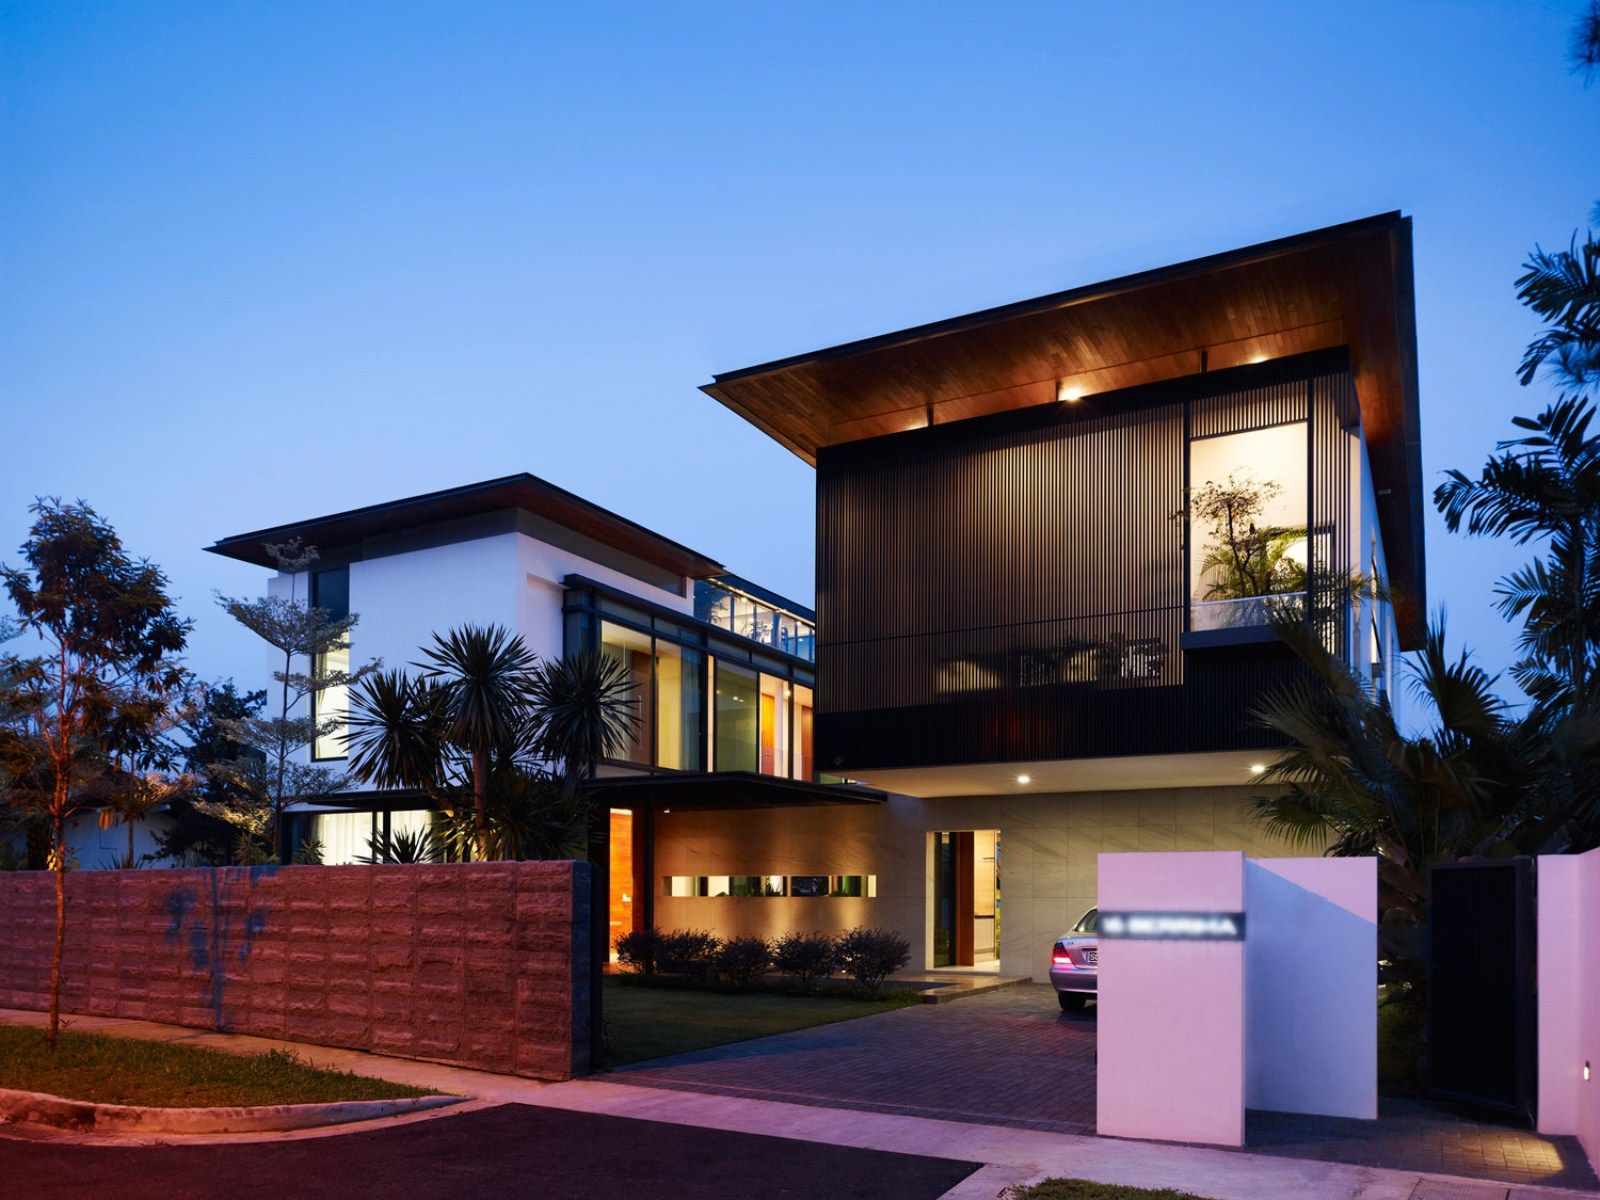 Architecture Modern Ideas Tropical House Facade Design With . & Architecture Modern Ideas Tropical House Facade Design With ...